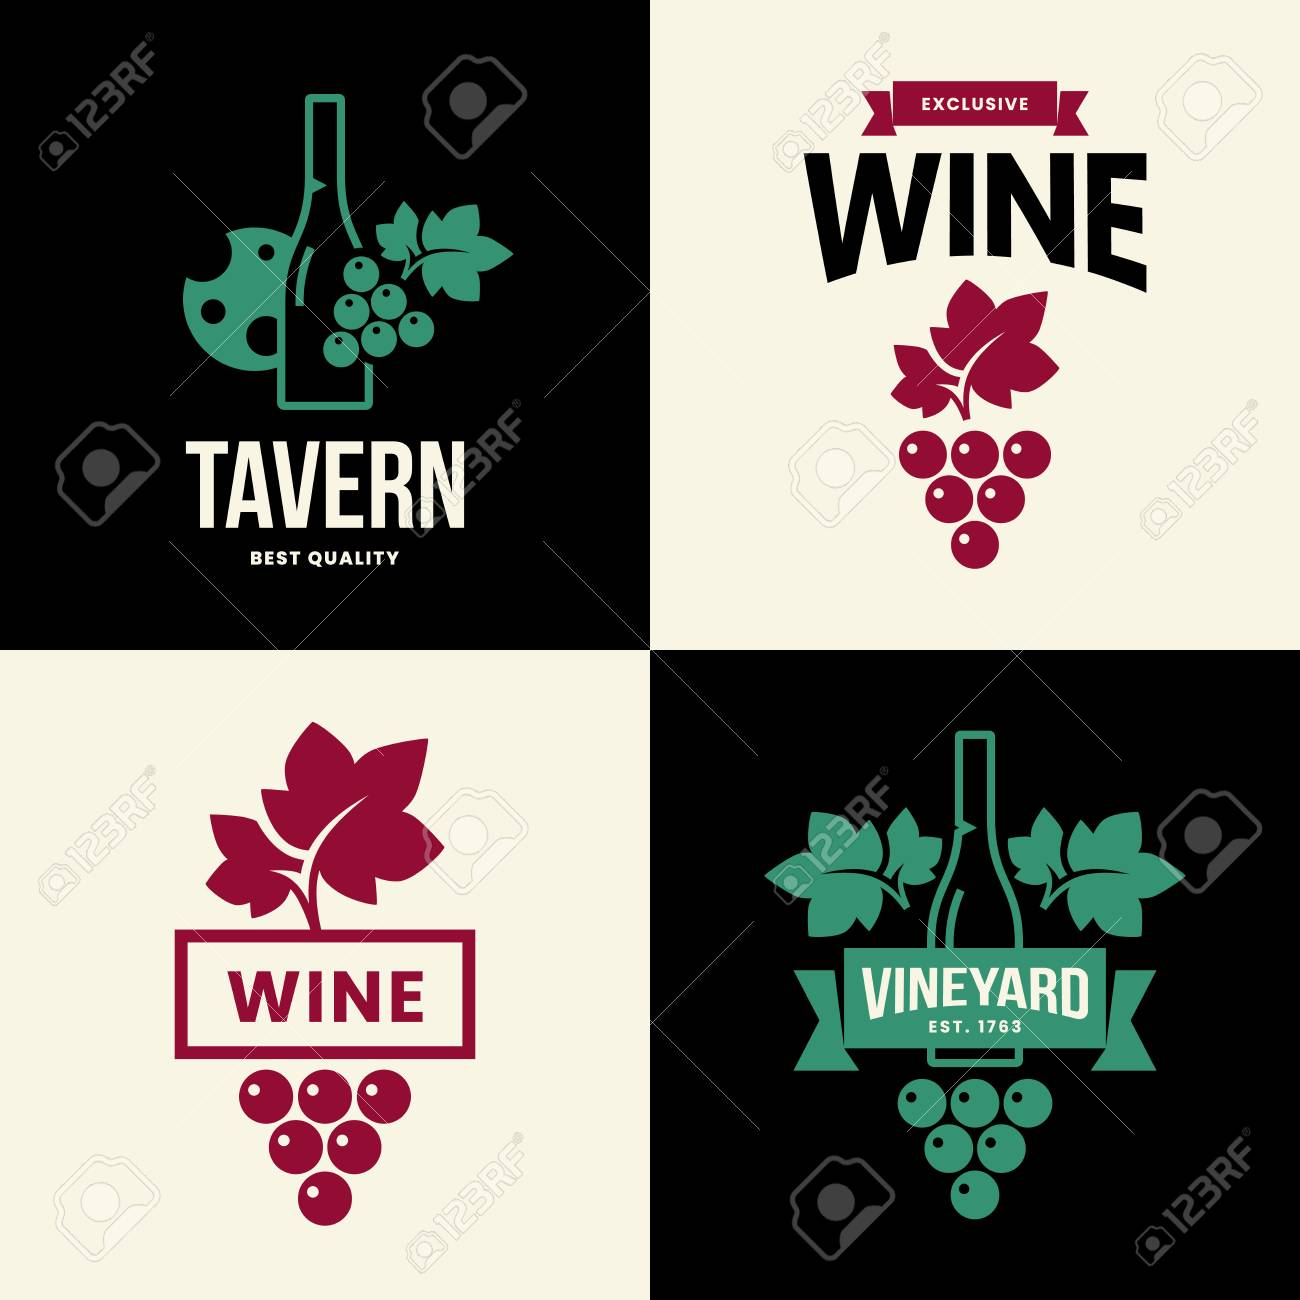 Modern wine vector isolated logo collection for tavern, restaurant, house, shop, store, club and cellar. Premium quality vinery logotype illustration set. Fashion brand badge design template bundle. - 120438786